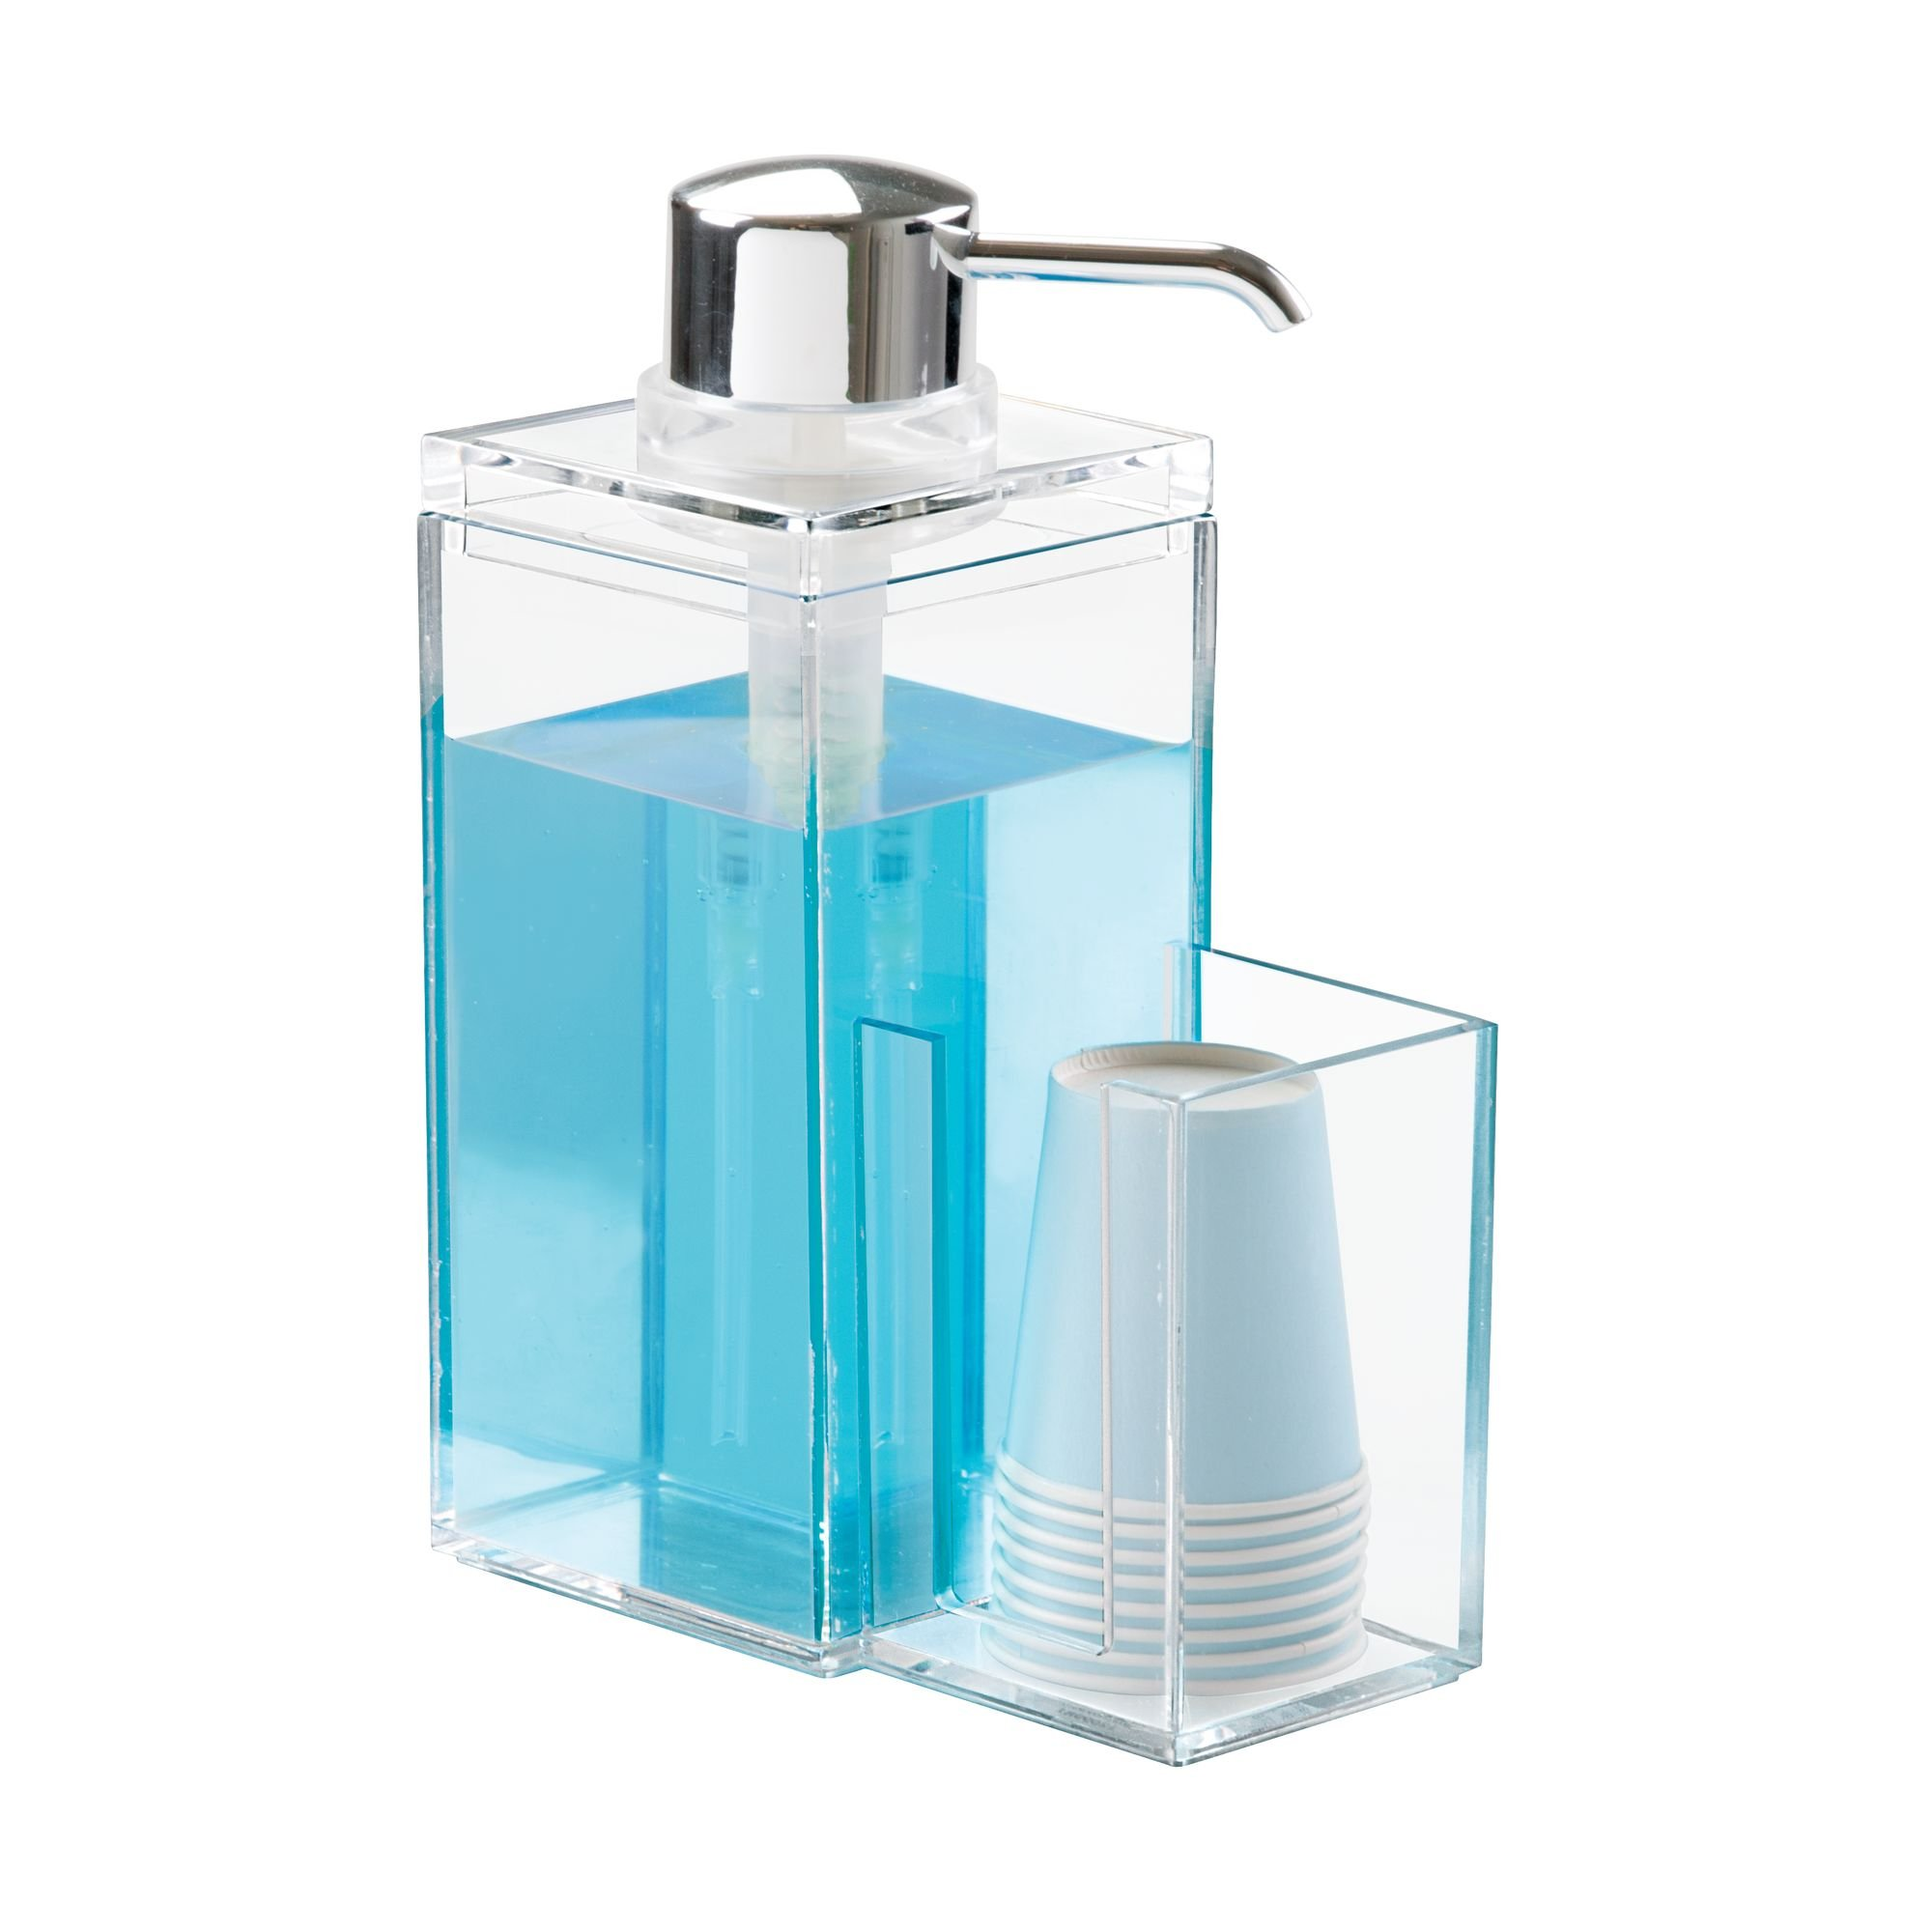 Amazon.com: mDesign Mouthwash Dispenser Pump Caddy for Bathroom ...